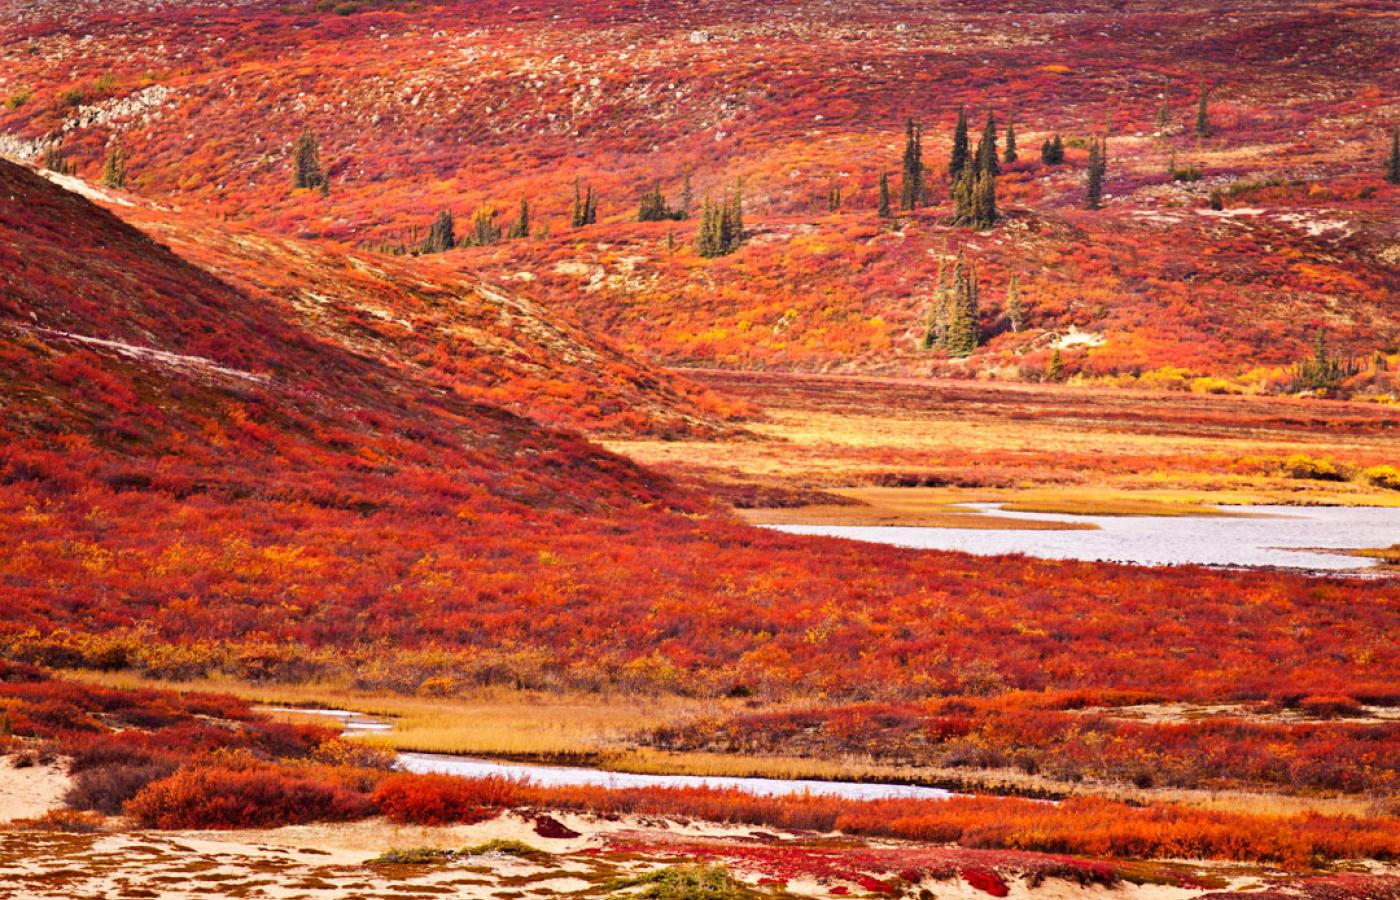 The stunning colours on the Barrenlands in the Northwest Territories